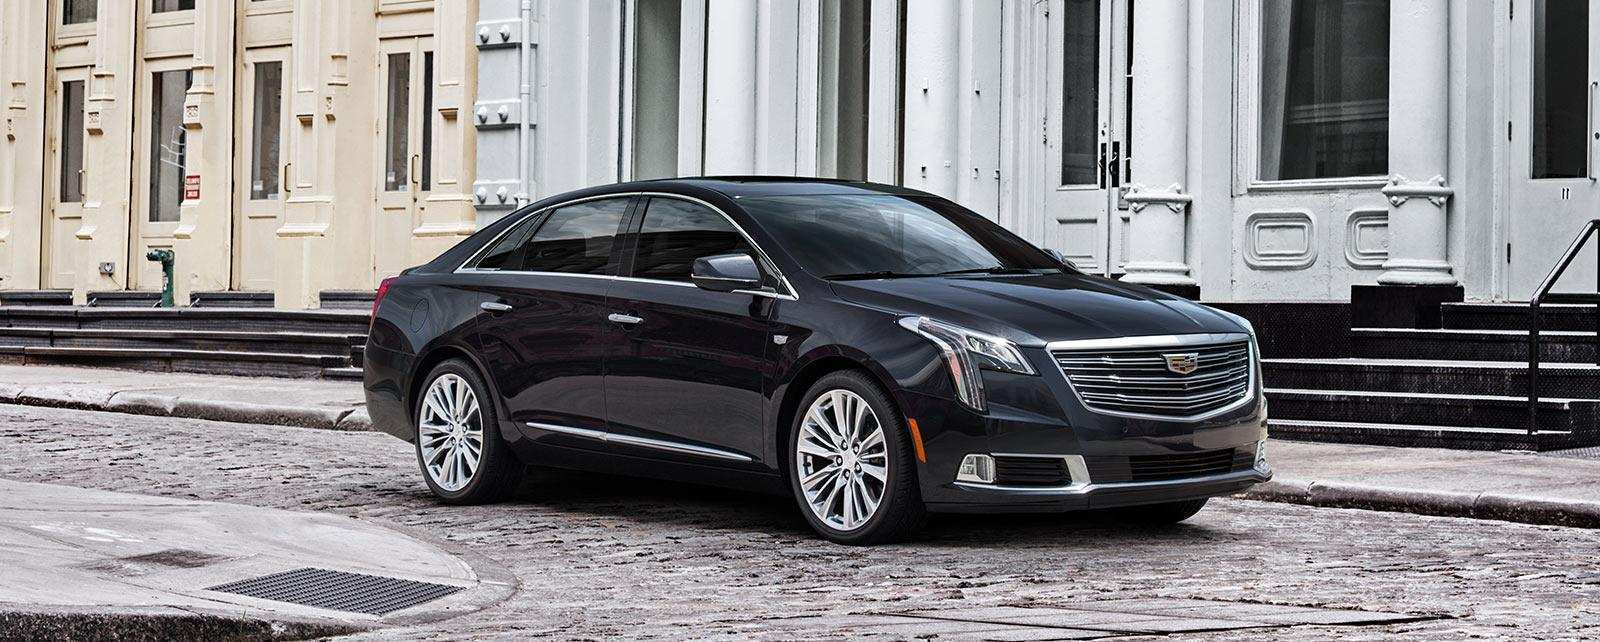 97 A 2019 Candillac Xts New Model And Performance